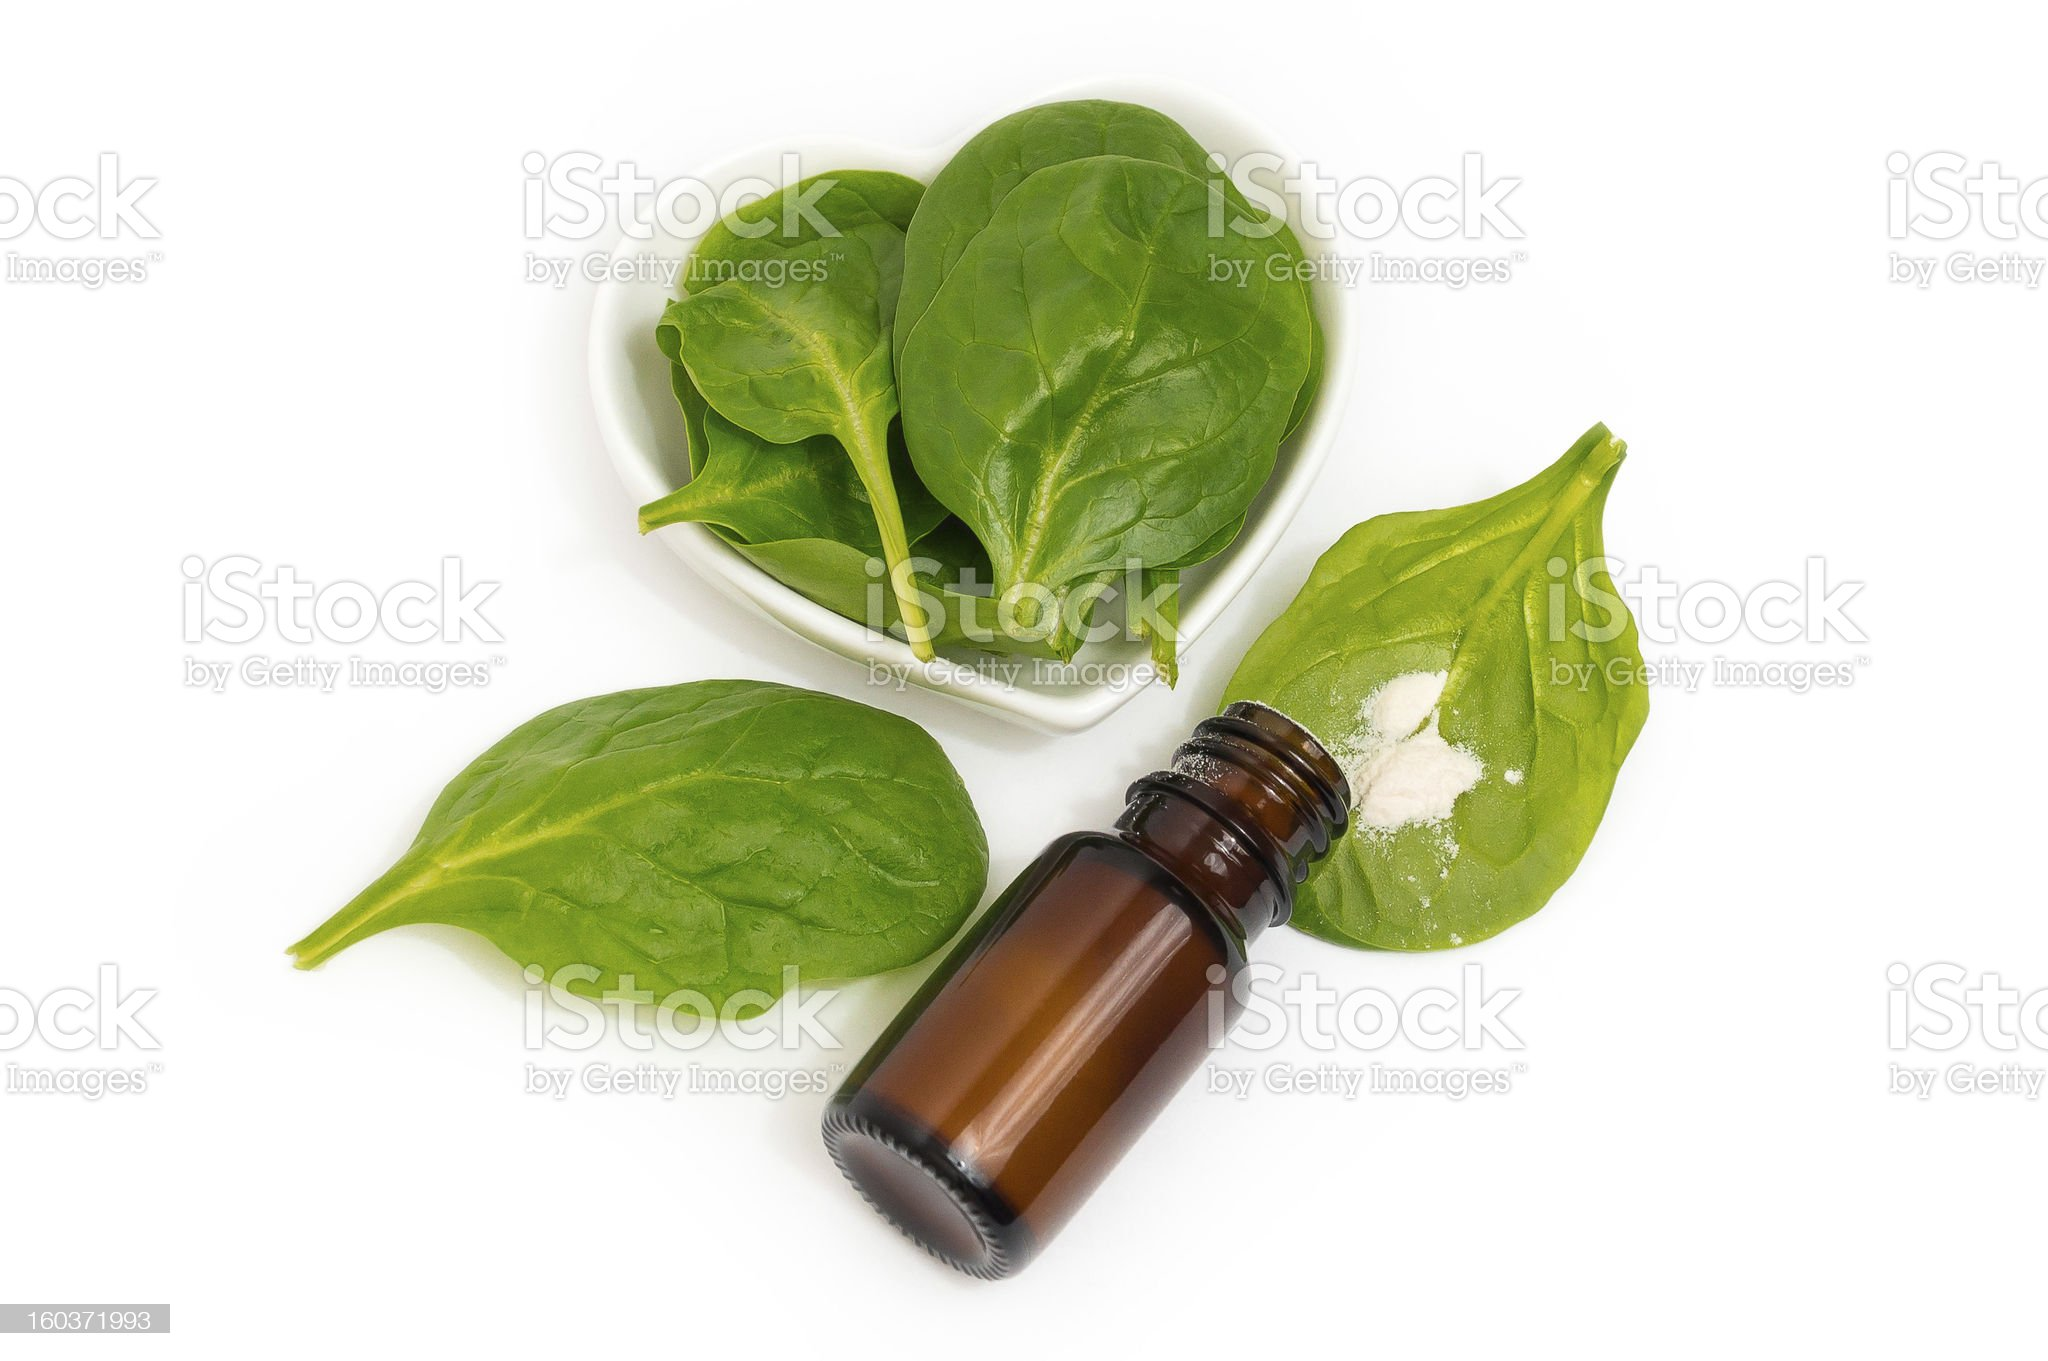 Bottle with White Powder and Spinach on a Heartshaped Plate royalty-free stock photo